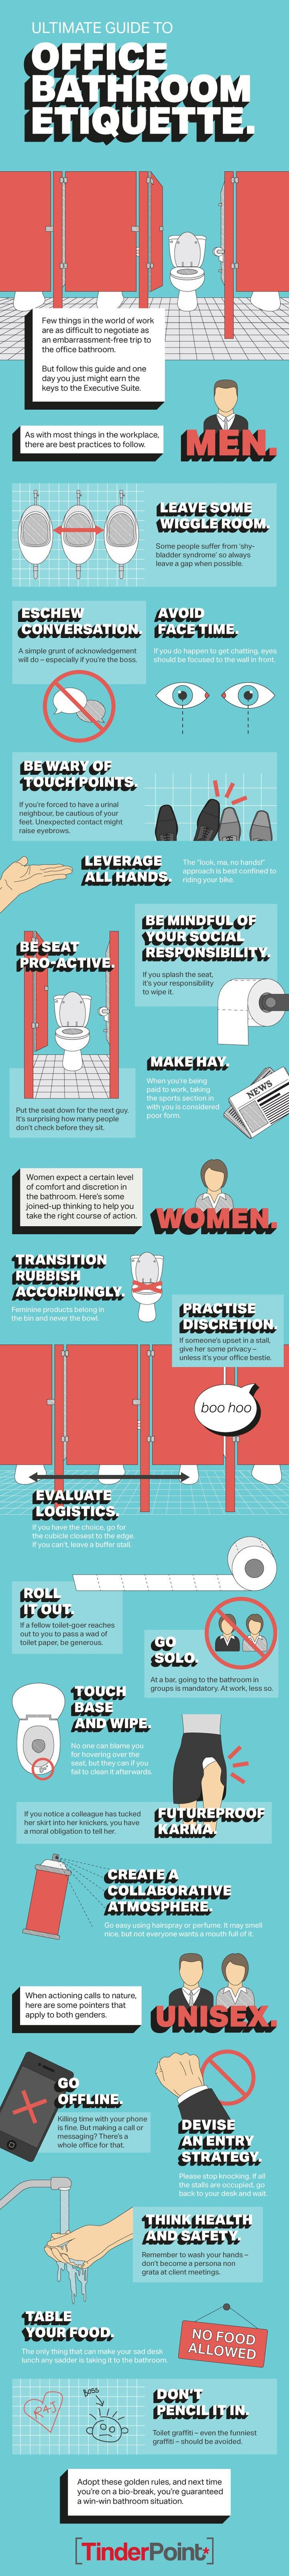 The Rules of Office Bathroom Etiquette (Because They Need to Be Said)